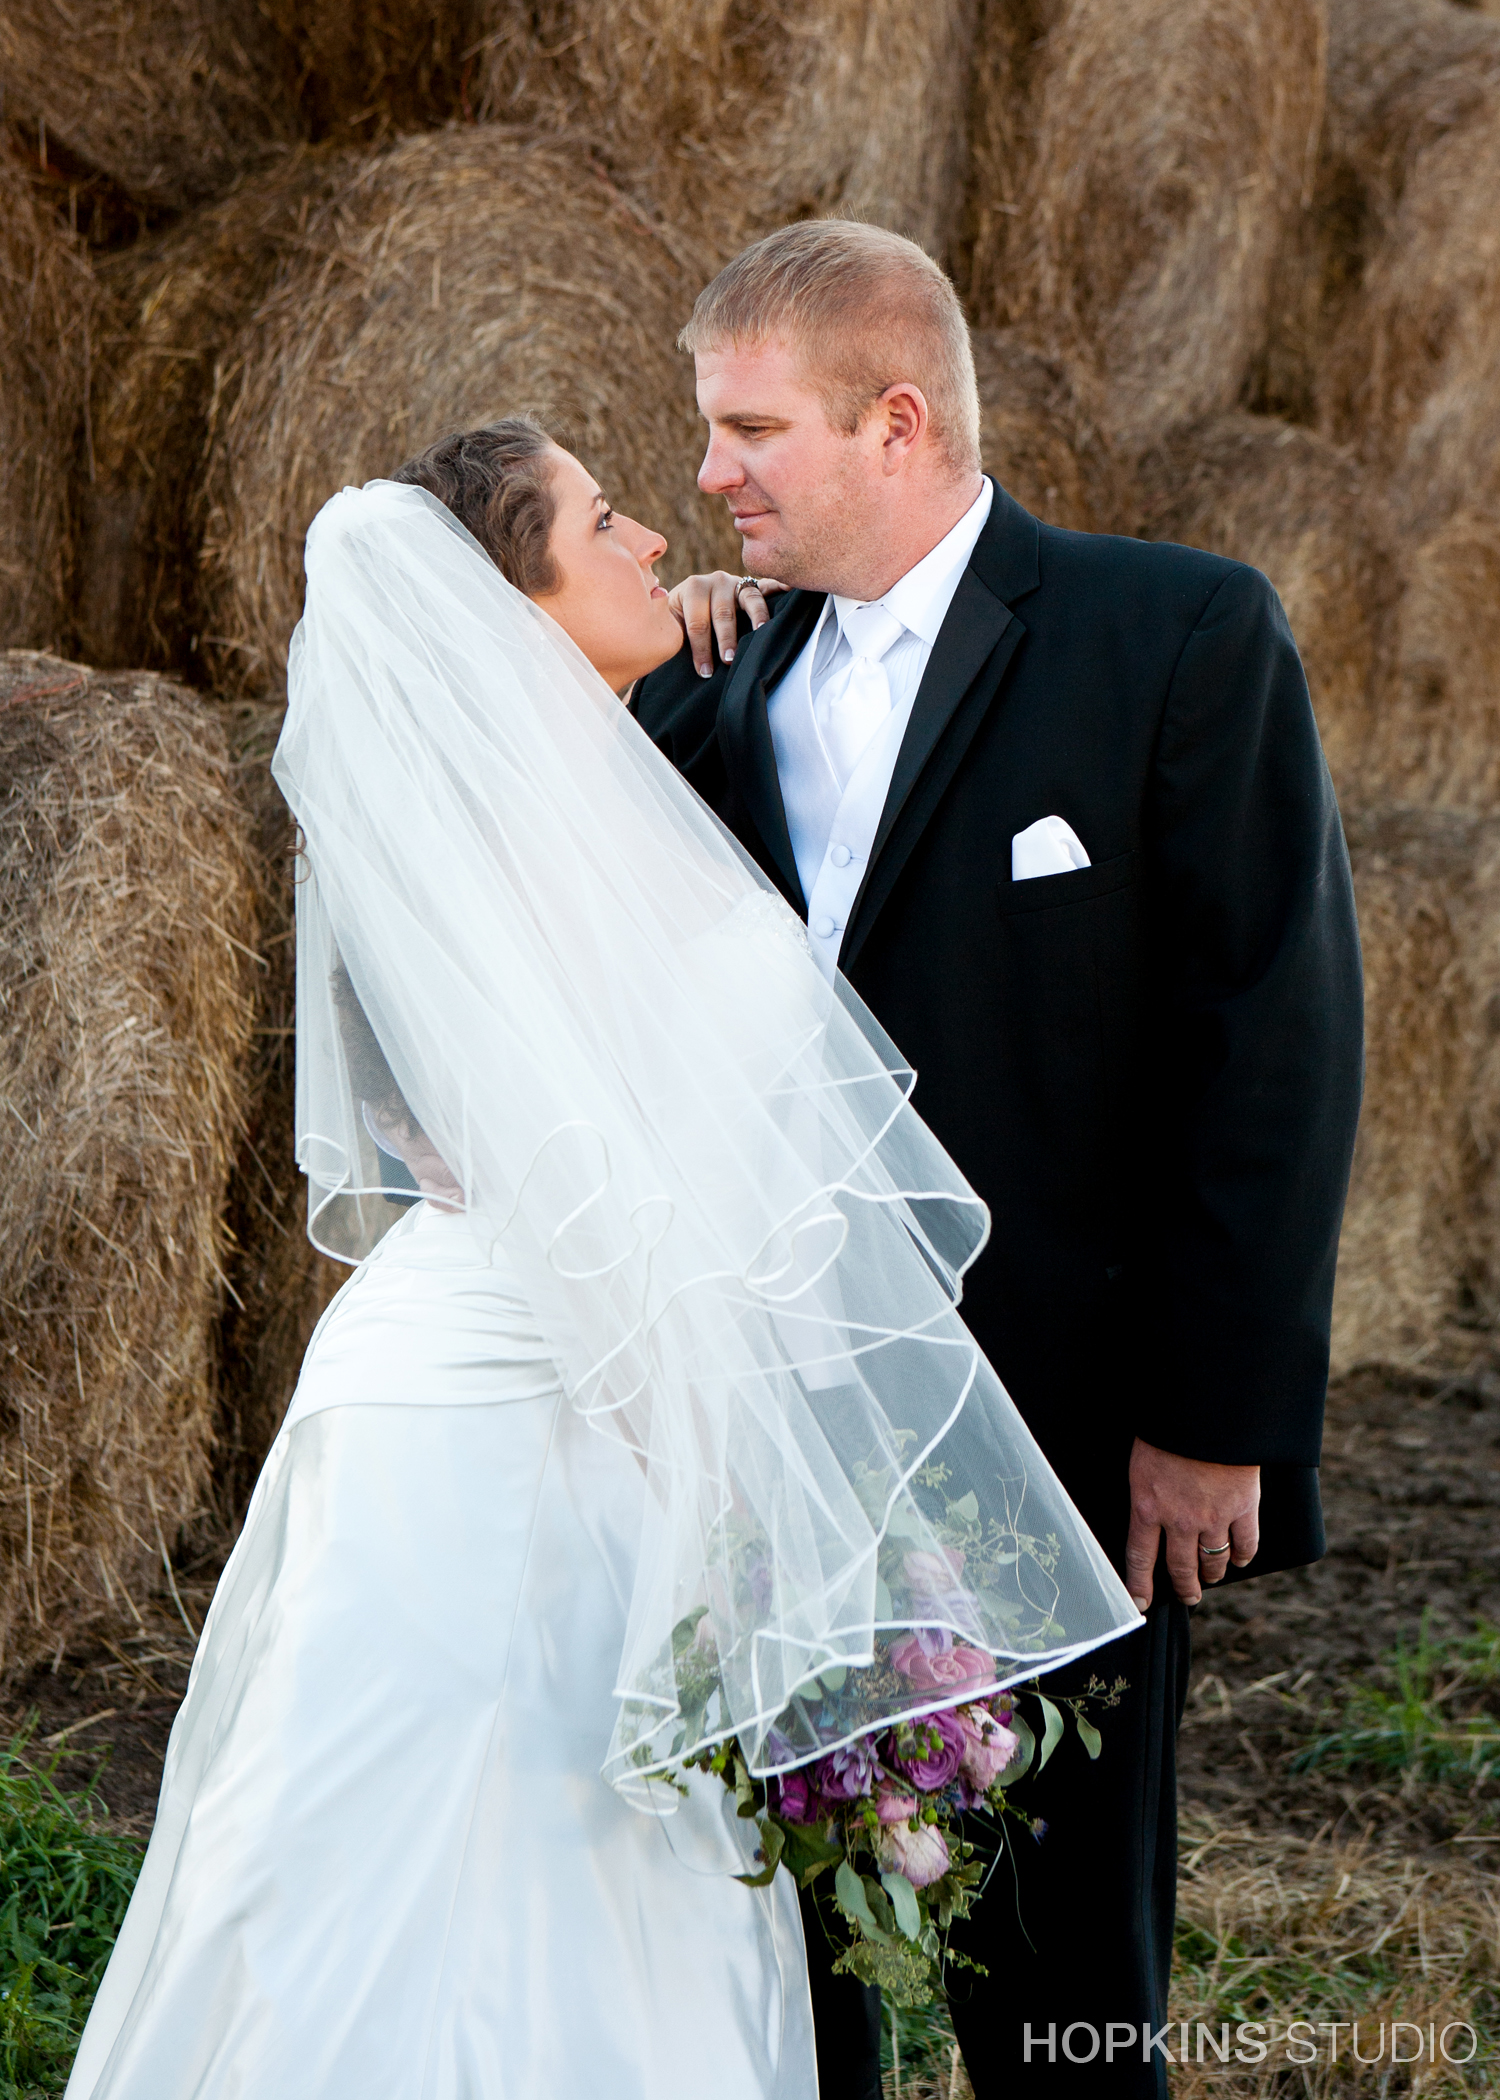 Wedding-Photography-Vineland-Center-Southwest-Michigan_29.jpg